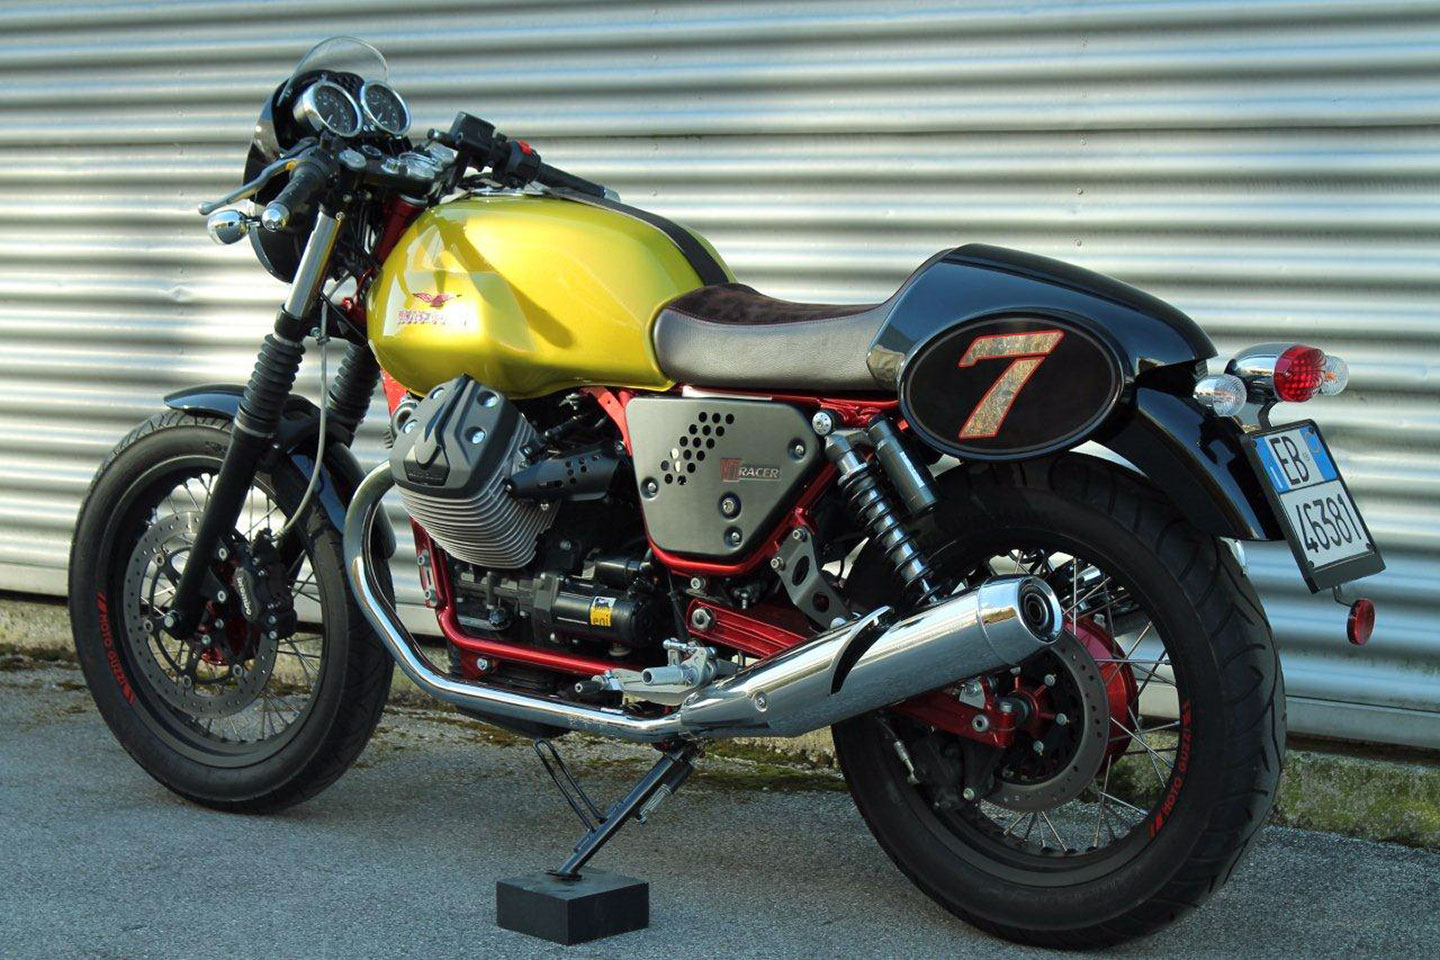 Moto Guzzi V7 Racer Limited Edition 2011 images #109578